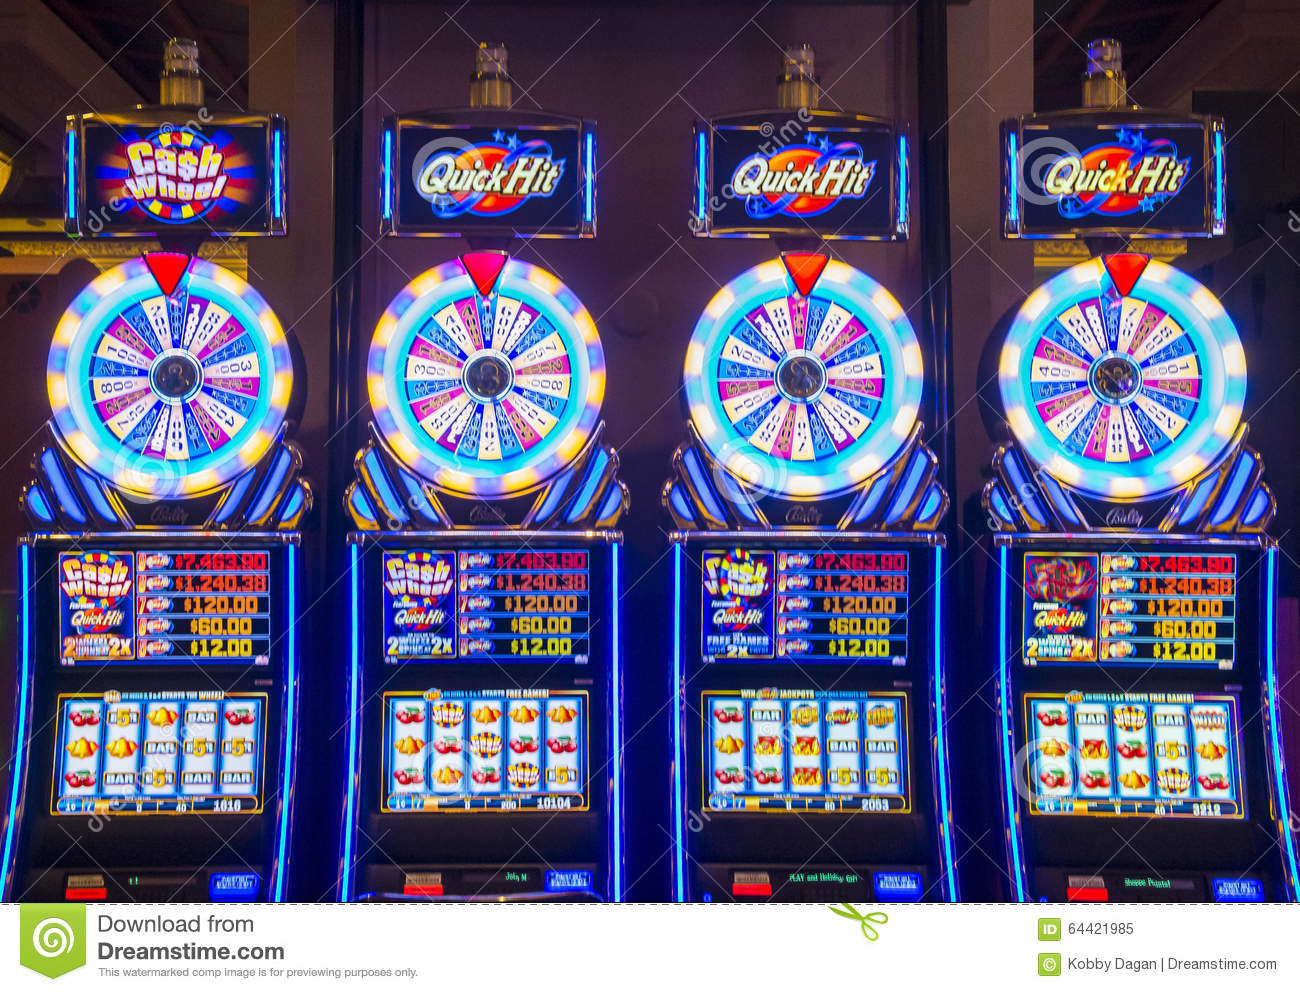 A Guide to Bay Area Casinos